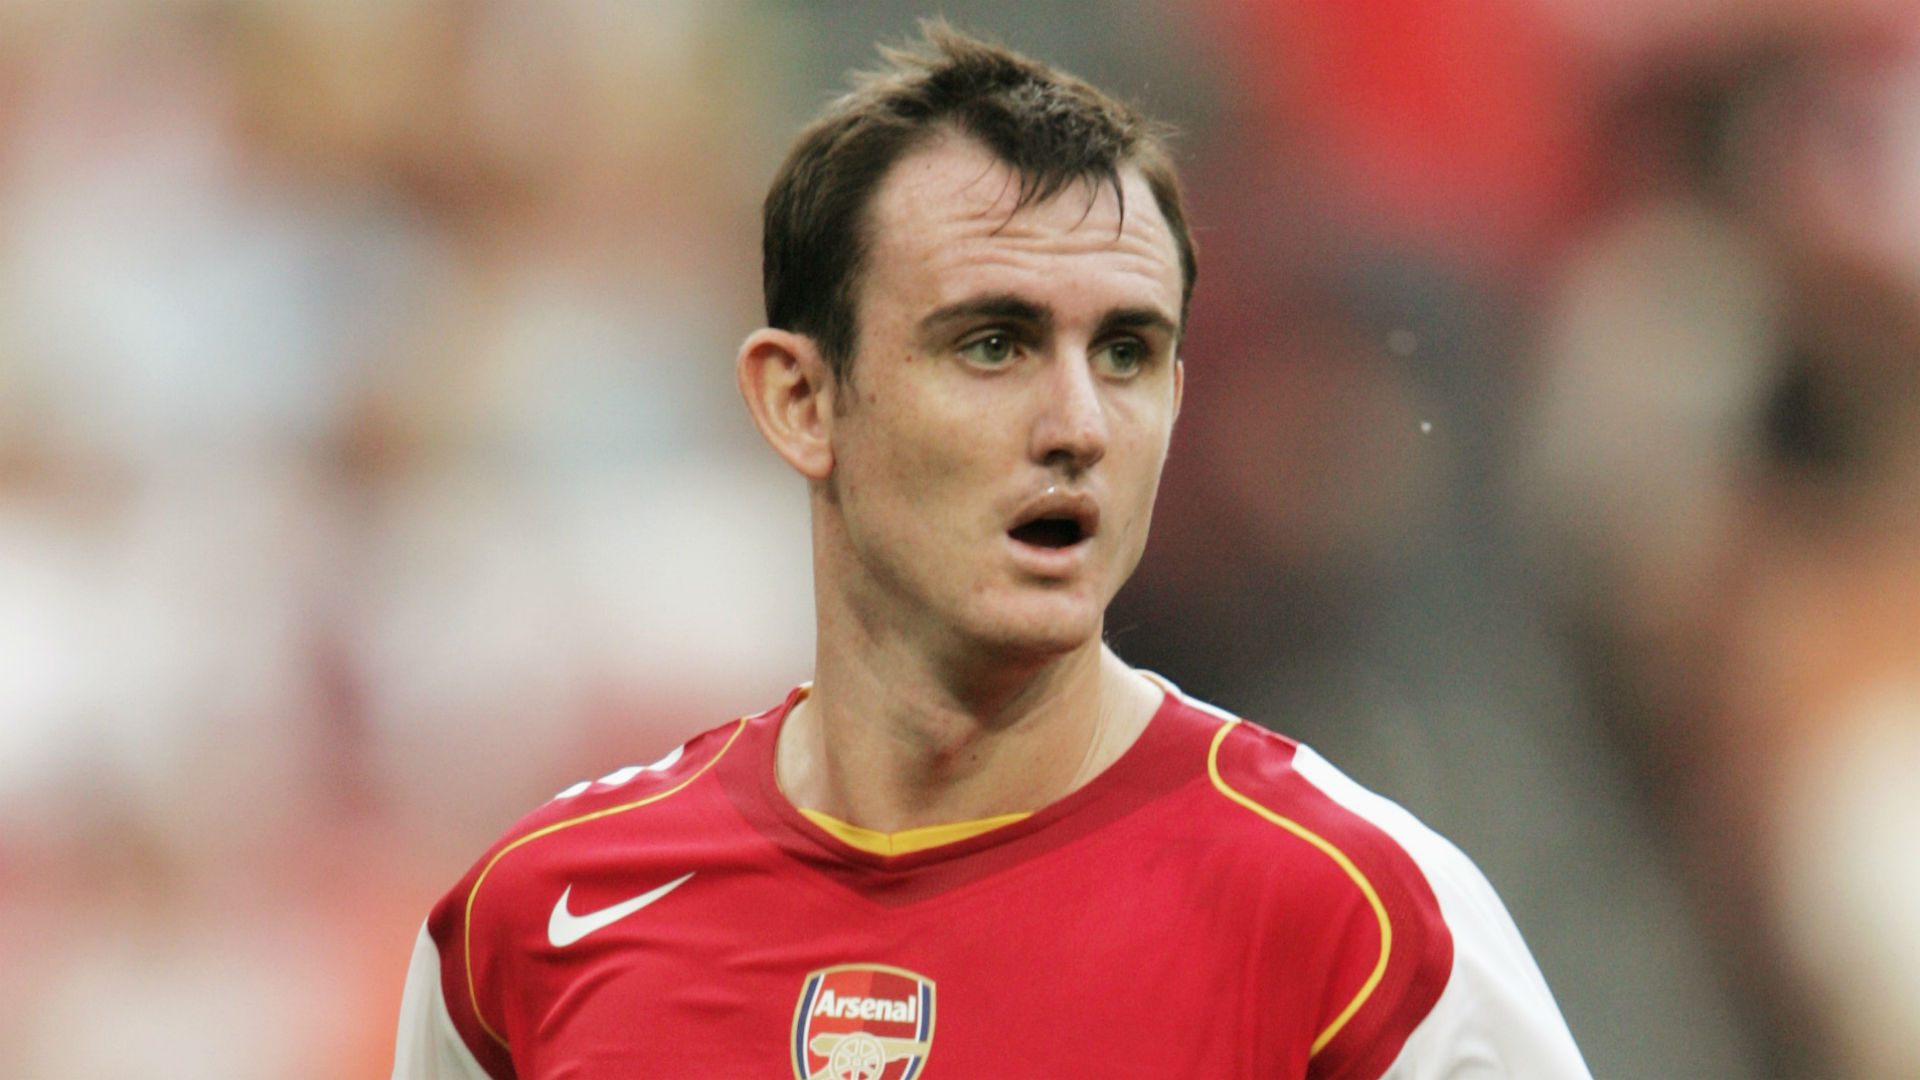 Francis Jeffers Arsenal